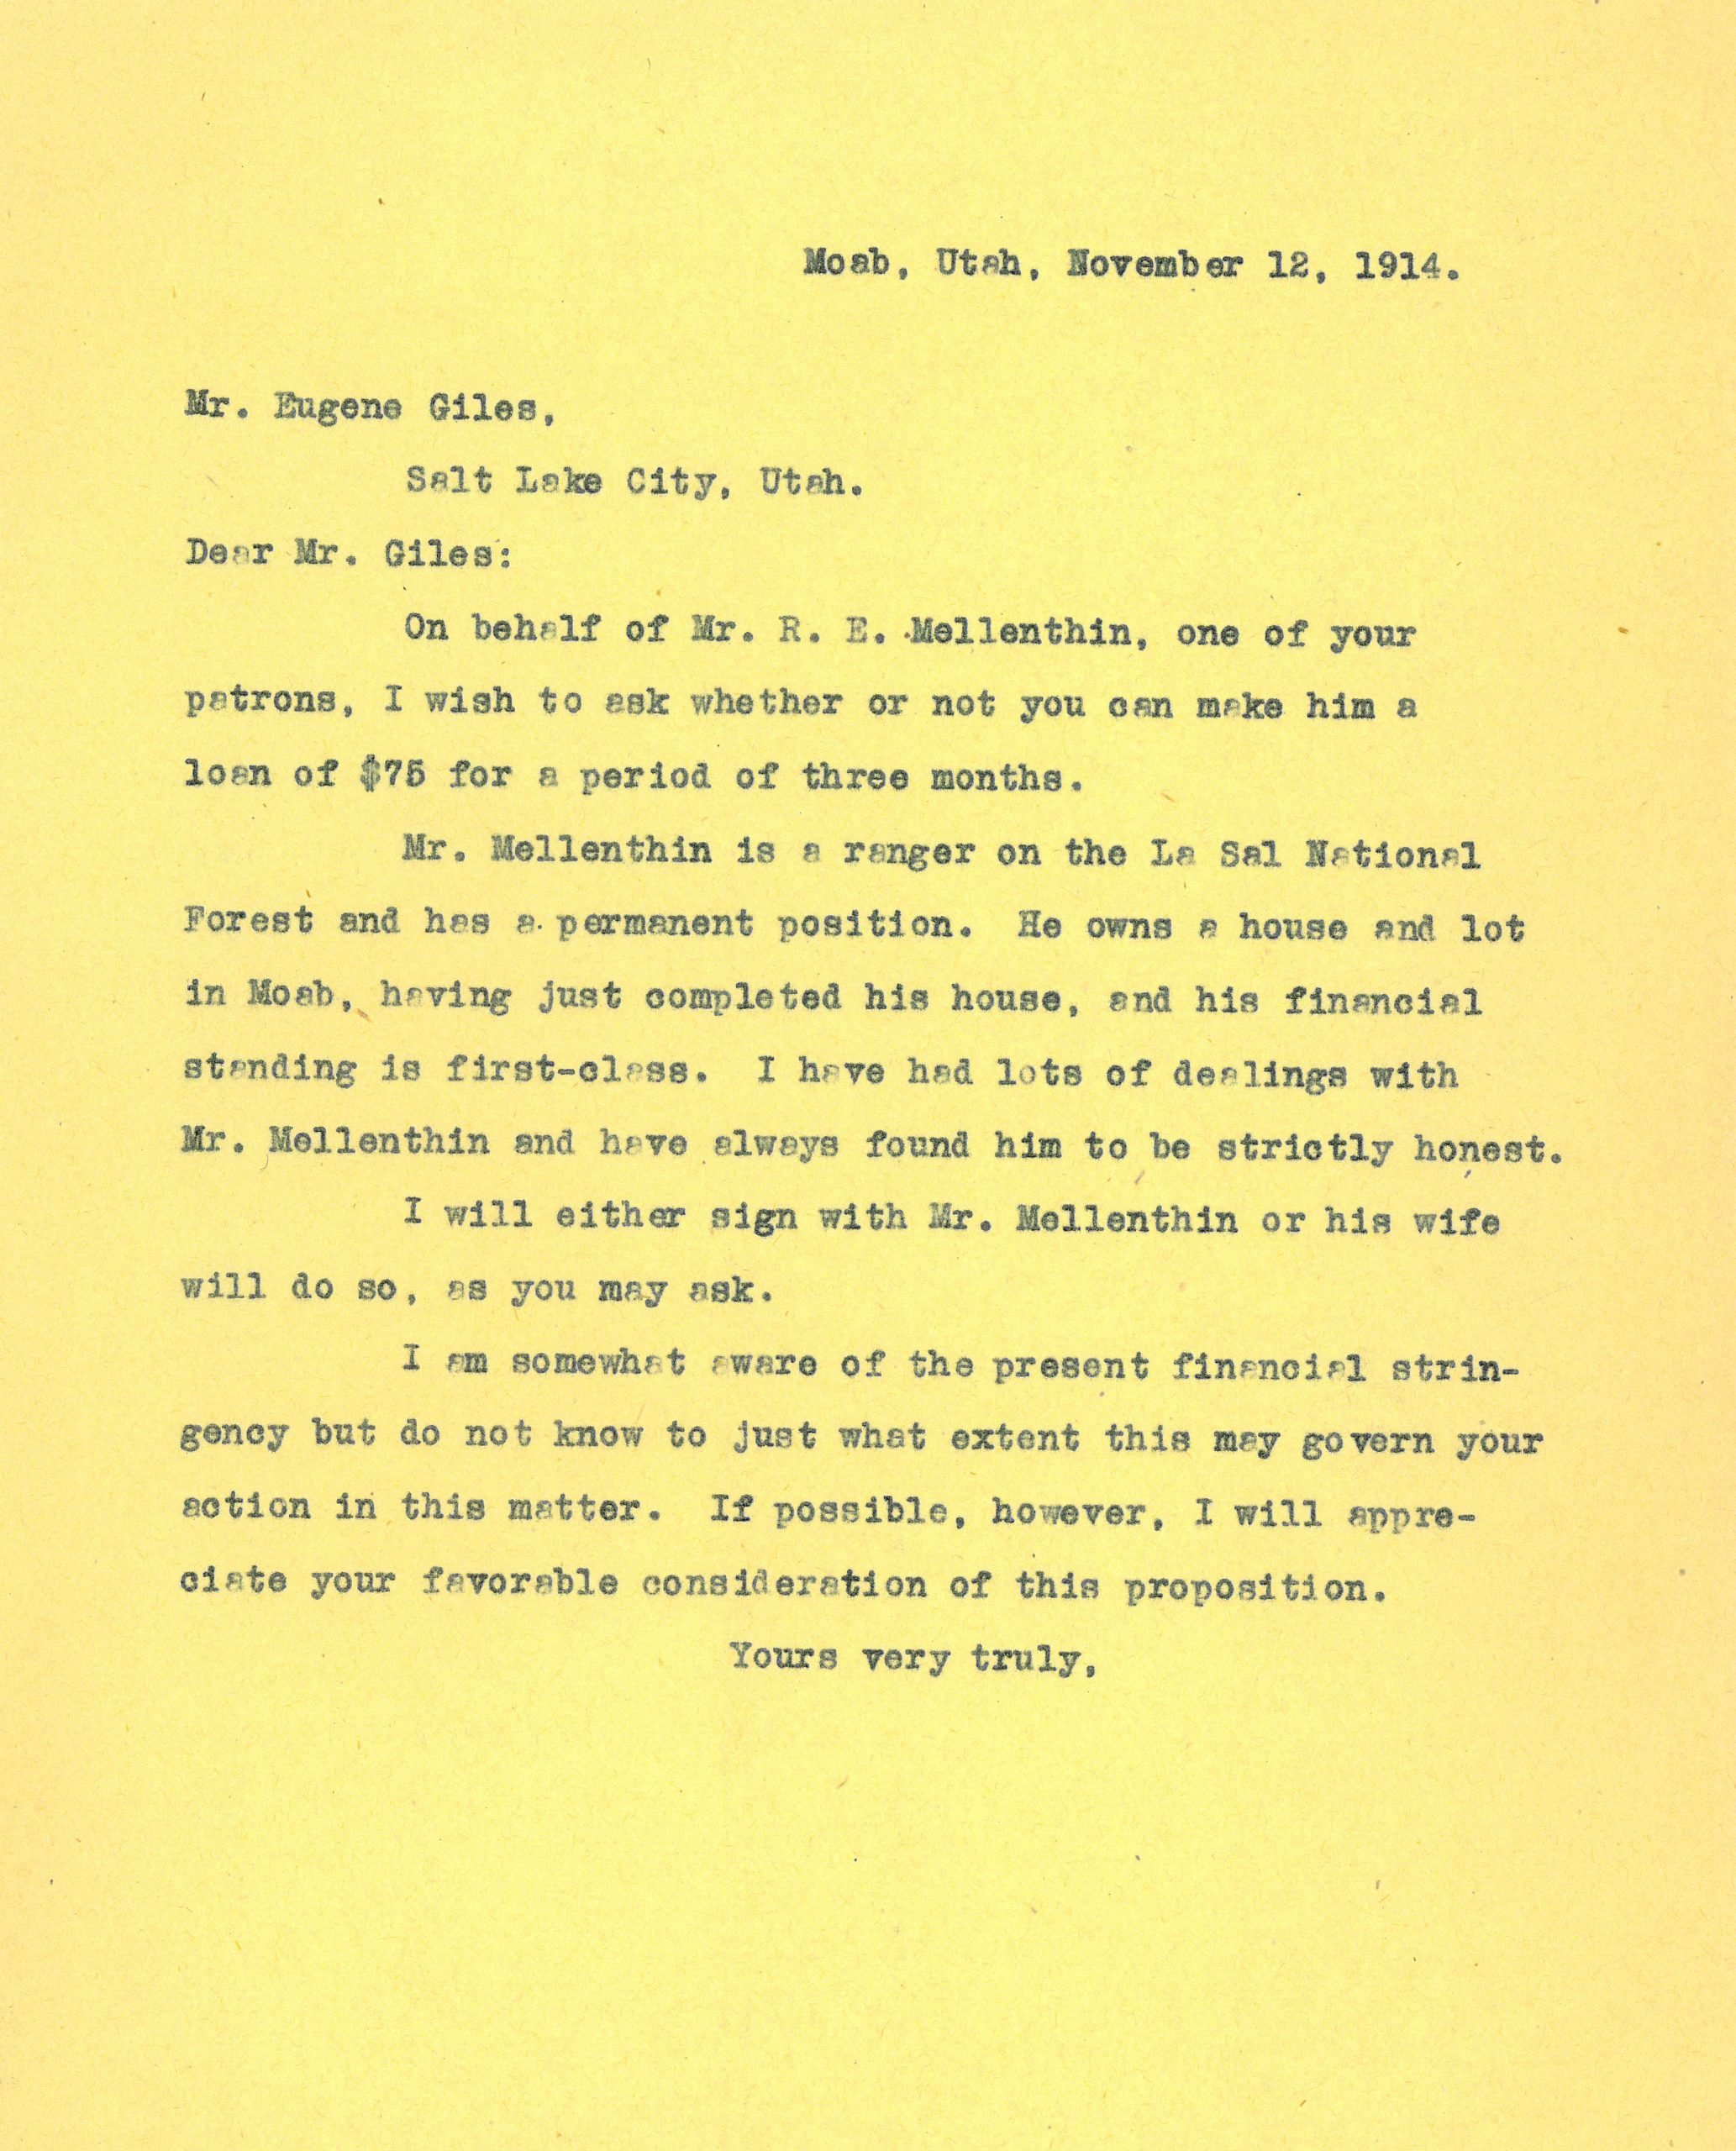 Letter to Mr. Eugene Giles